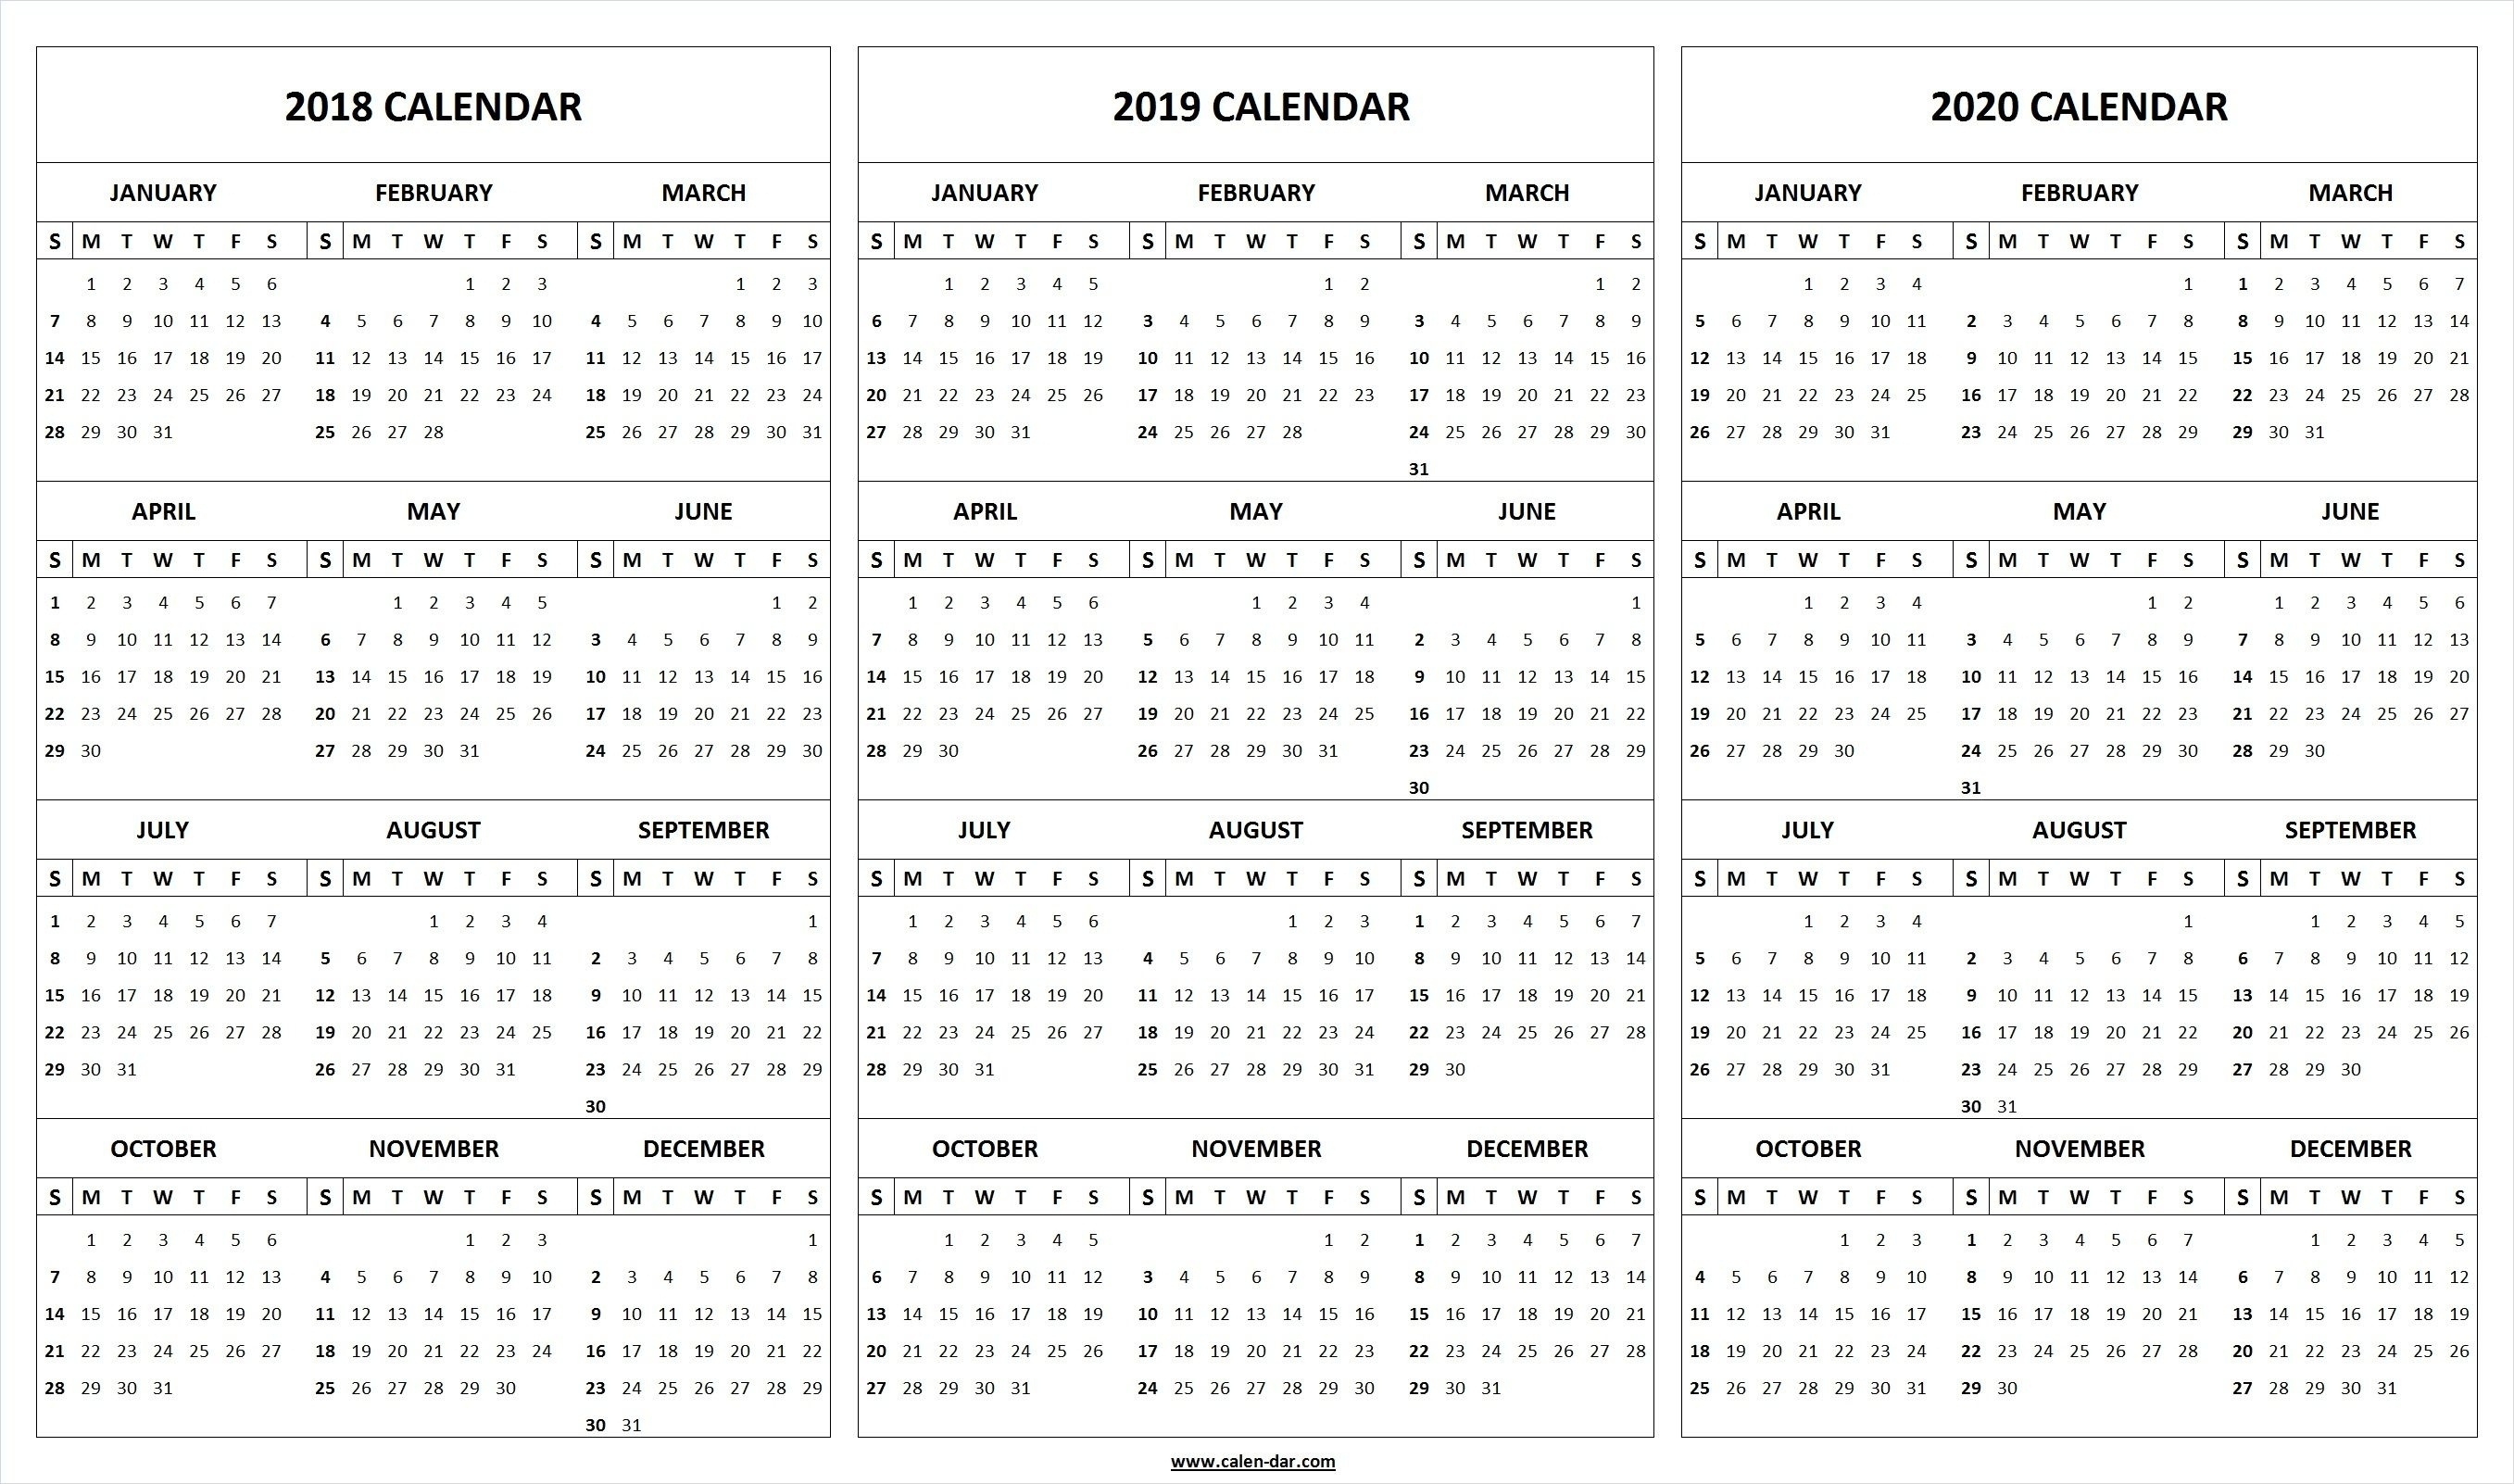 Free Printable 2020 Calendar With Holidays Philippines - 2019_School Calendar 2020-19 Deped